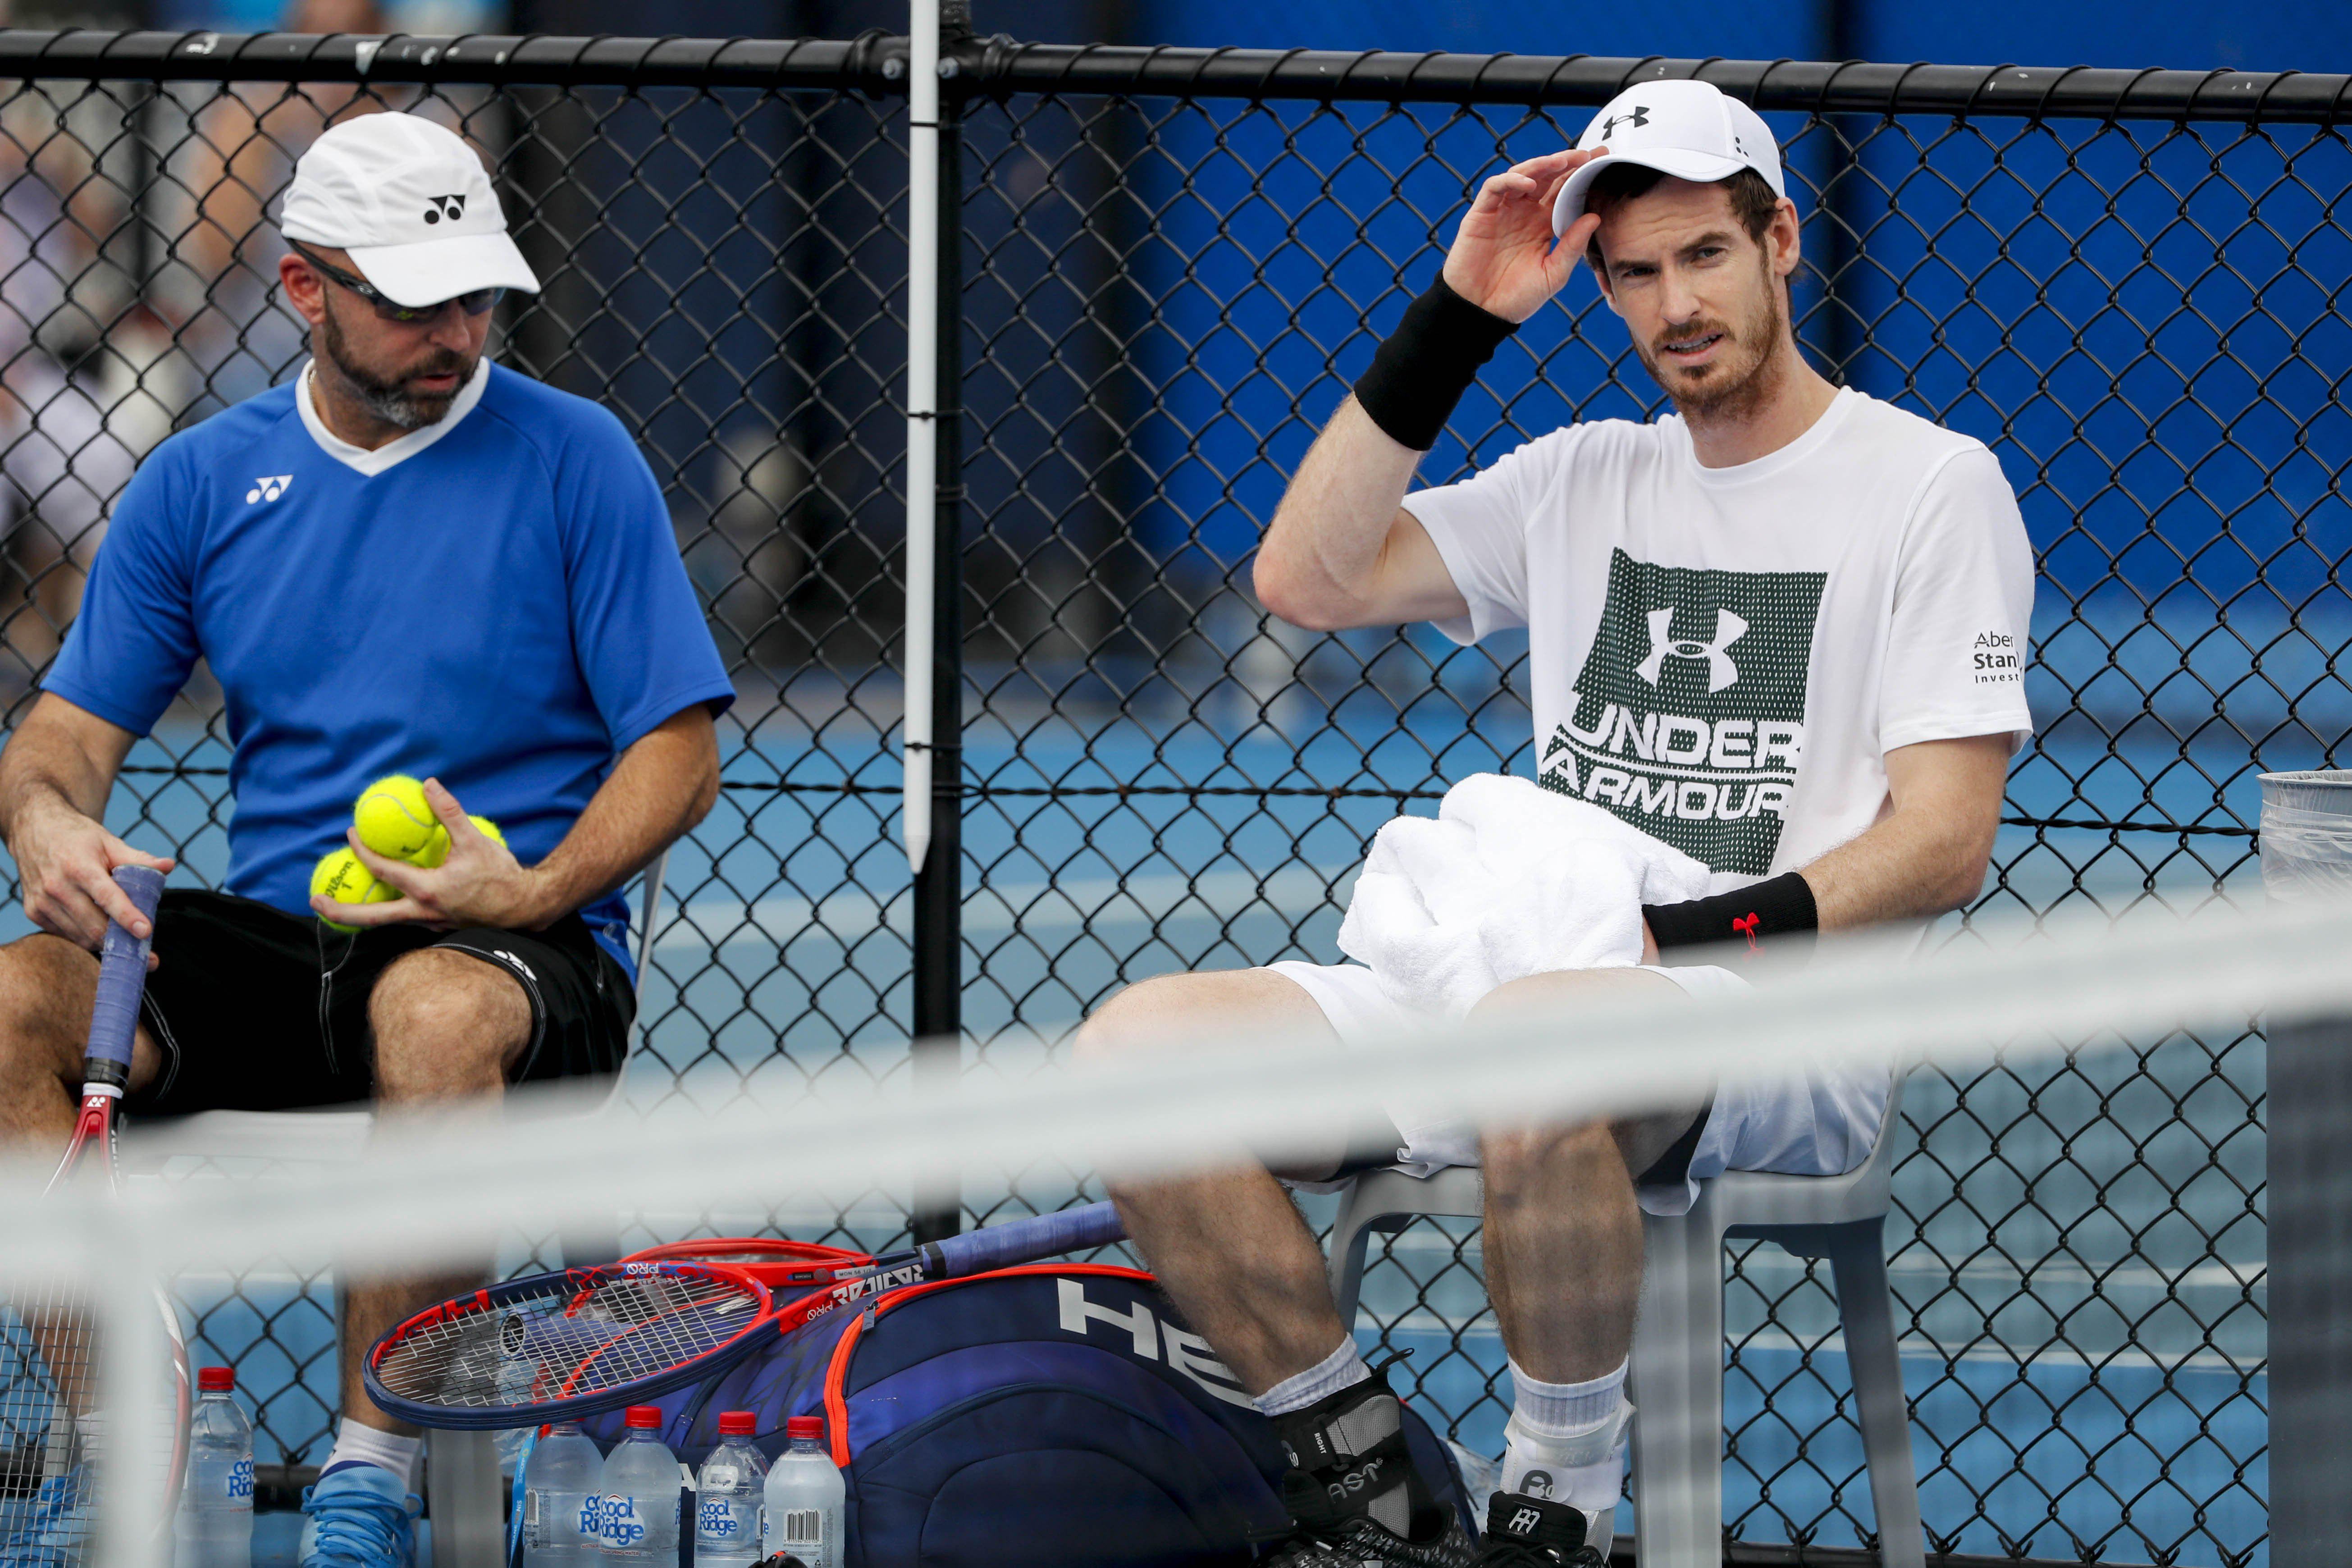 Andy Murray has also withdrawn - and several high profile men are injury doubts